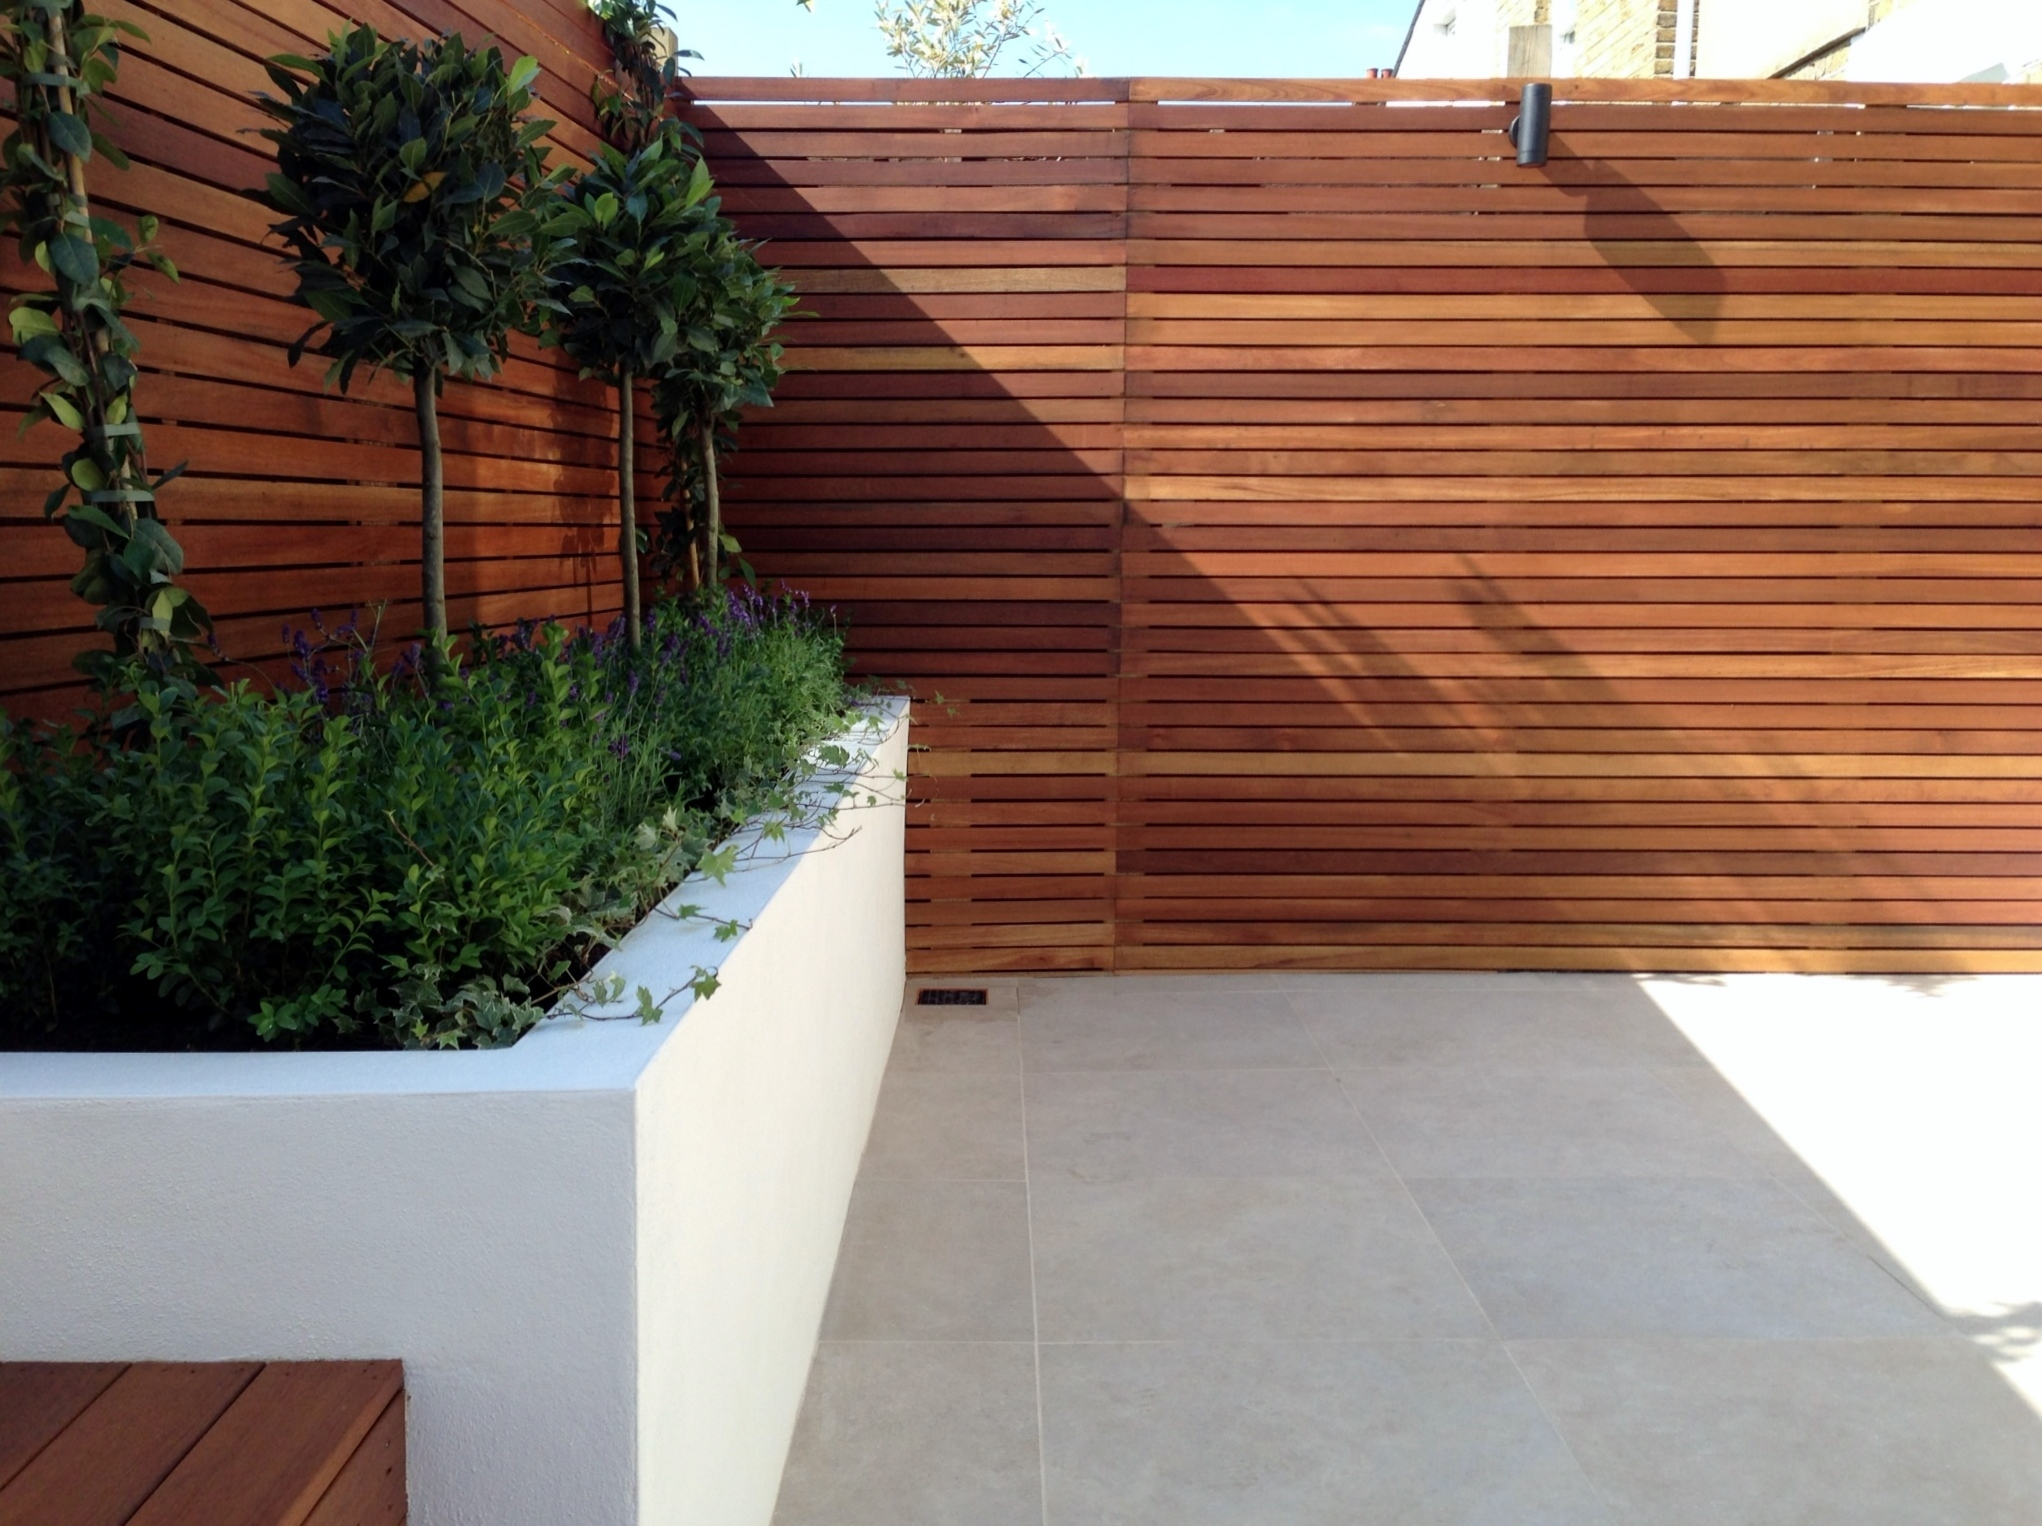 small garden design london marylebone ideas low maintenance grey tiles